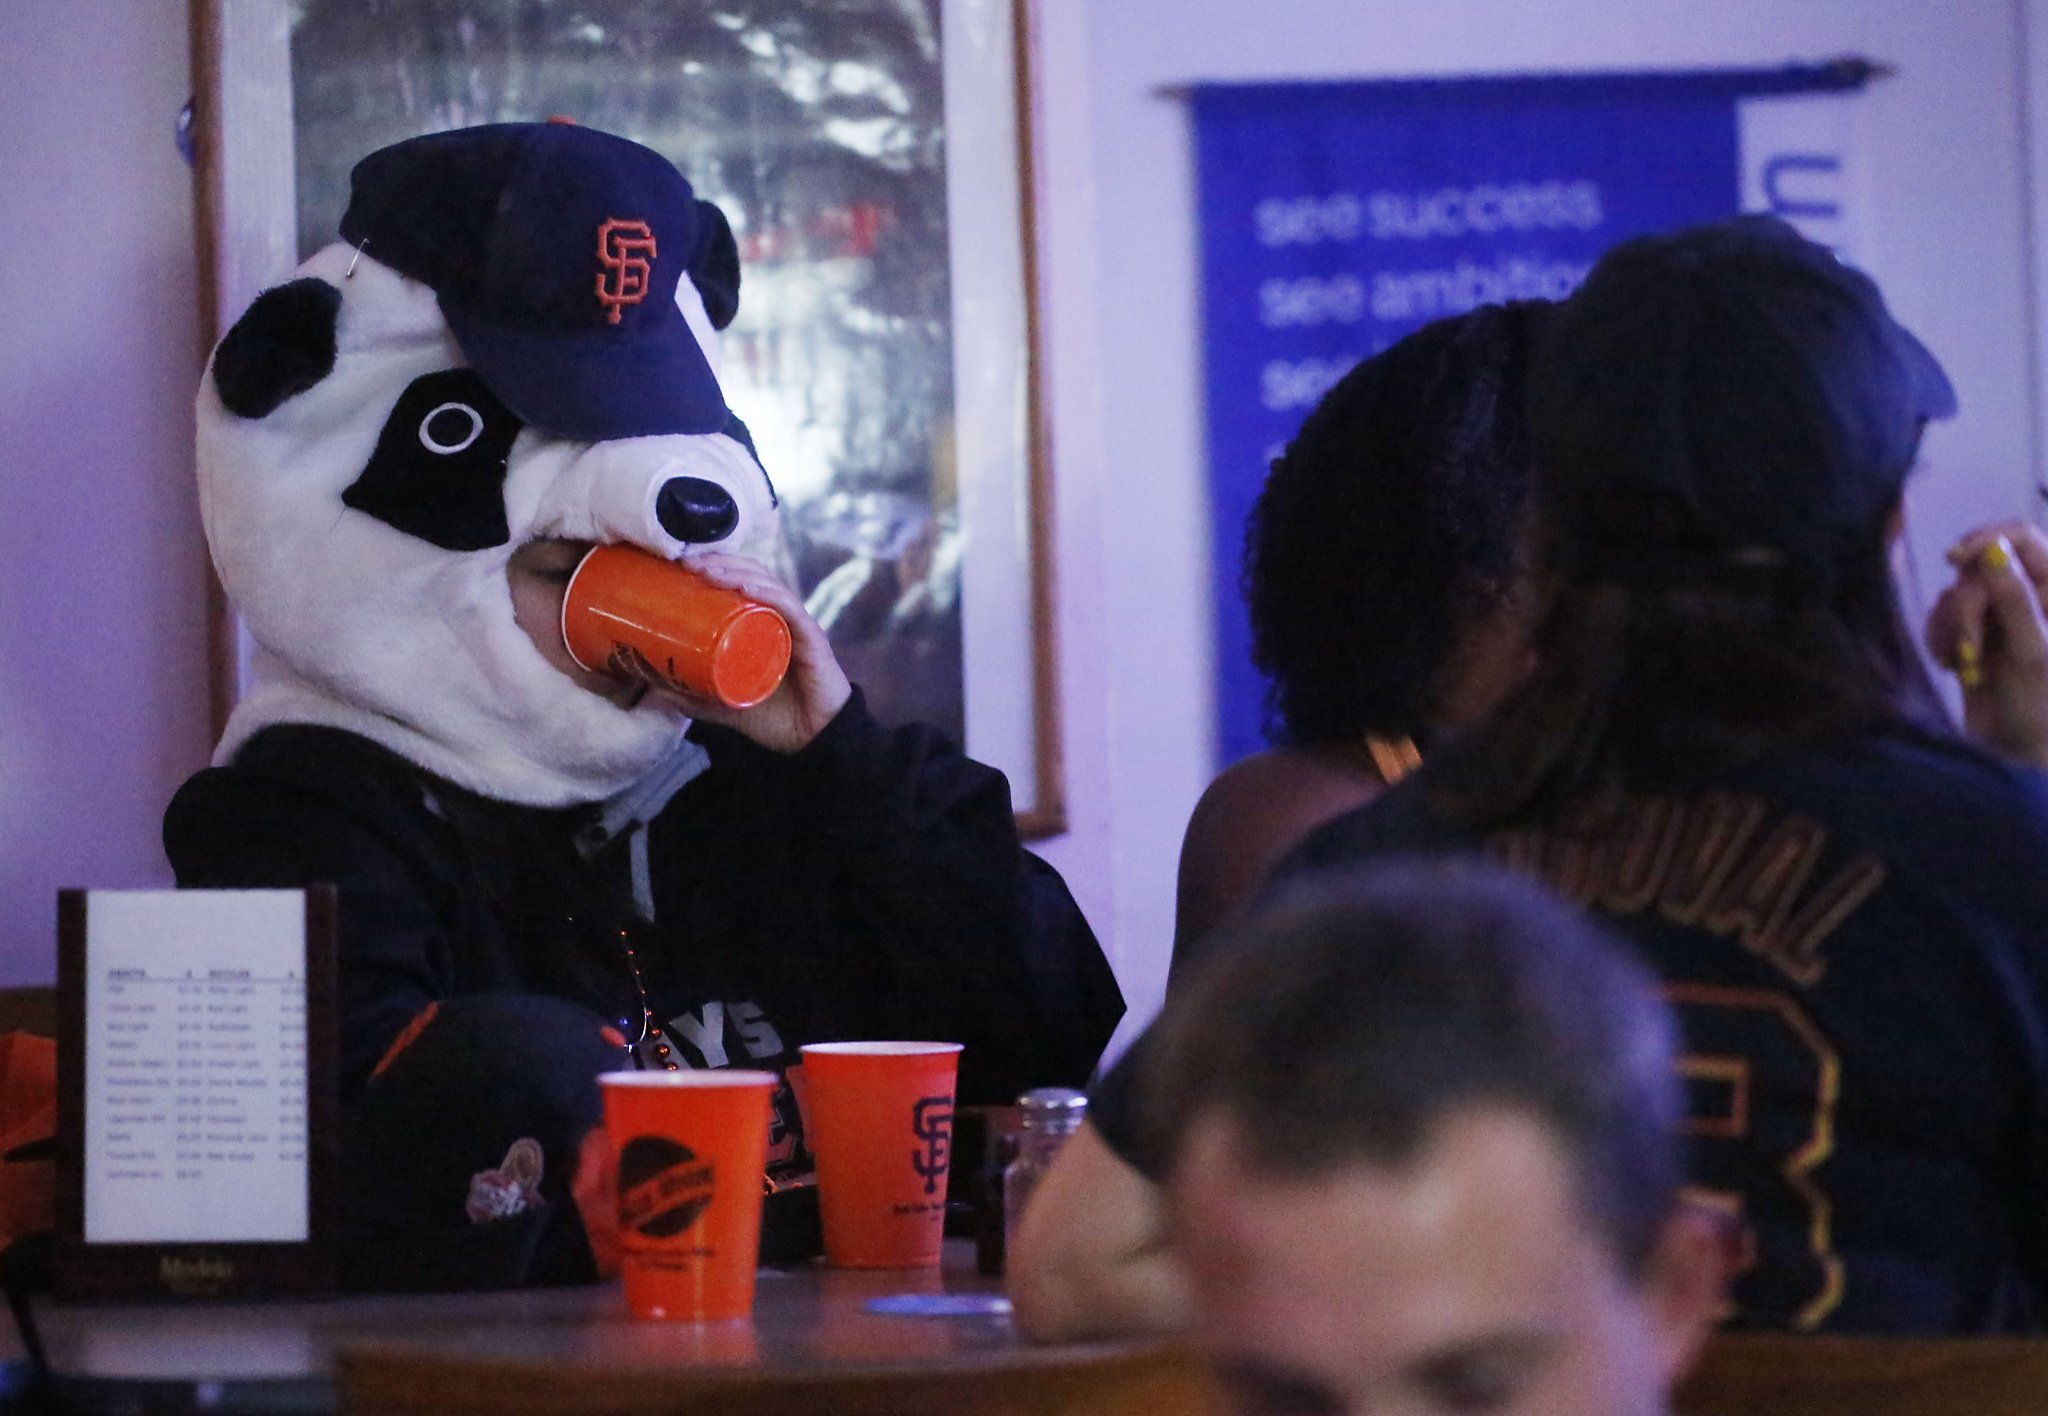 Oh The Pain Giants Fans Mourn And Hope For A Better Game